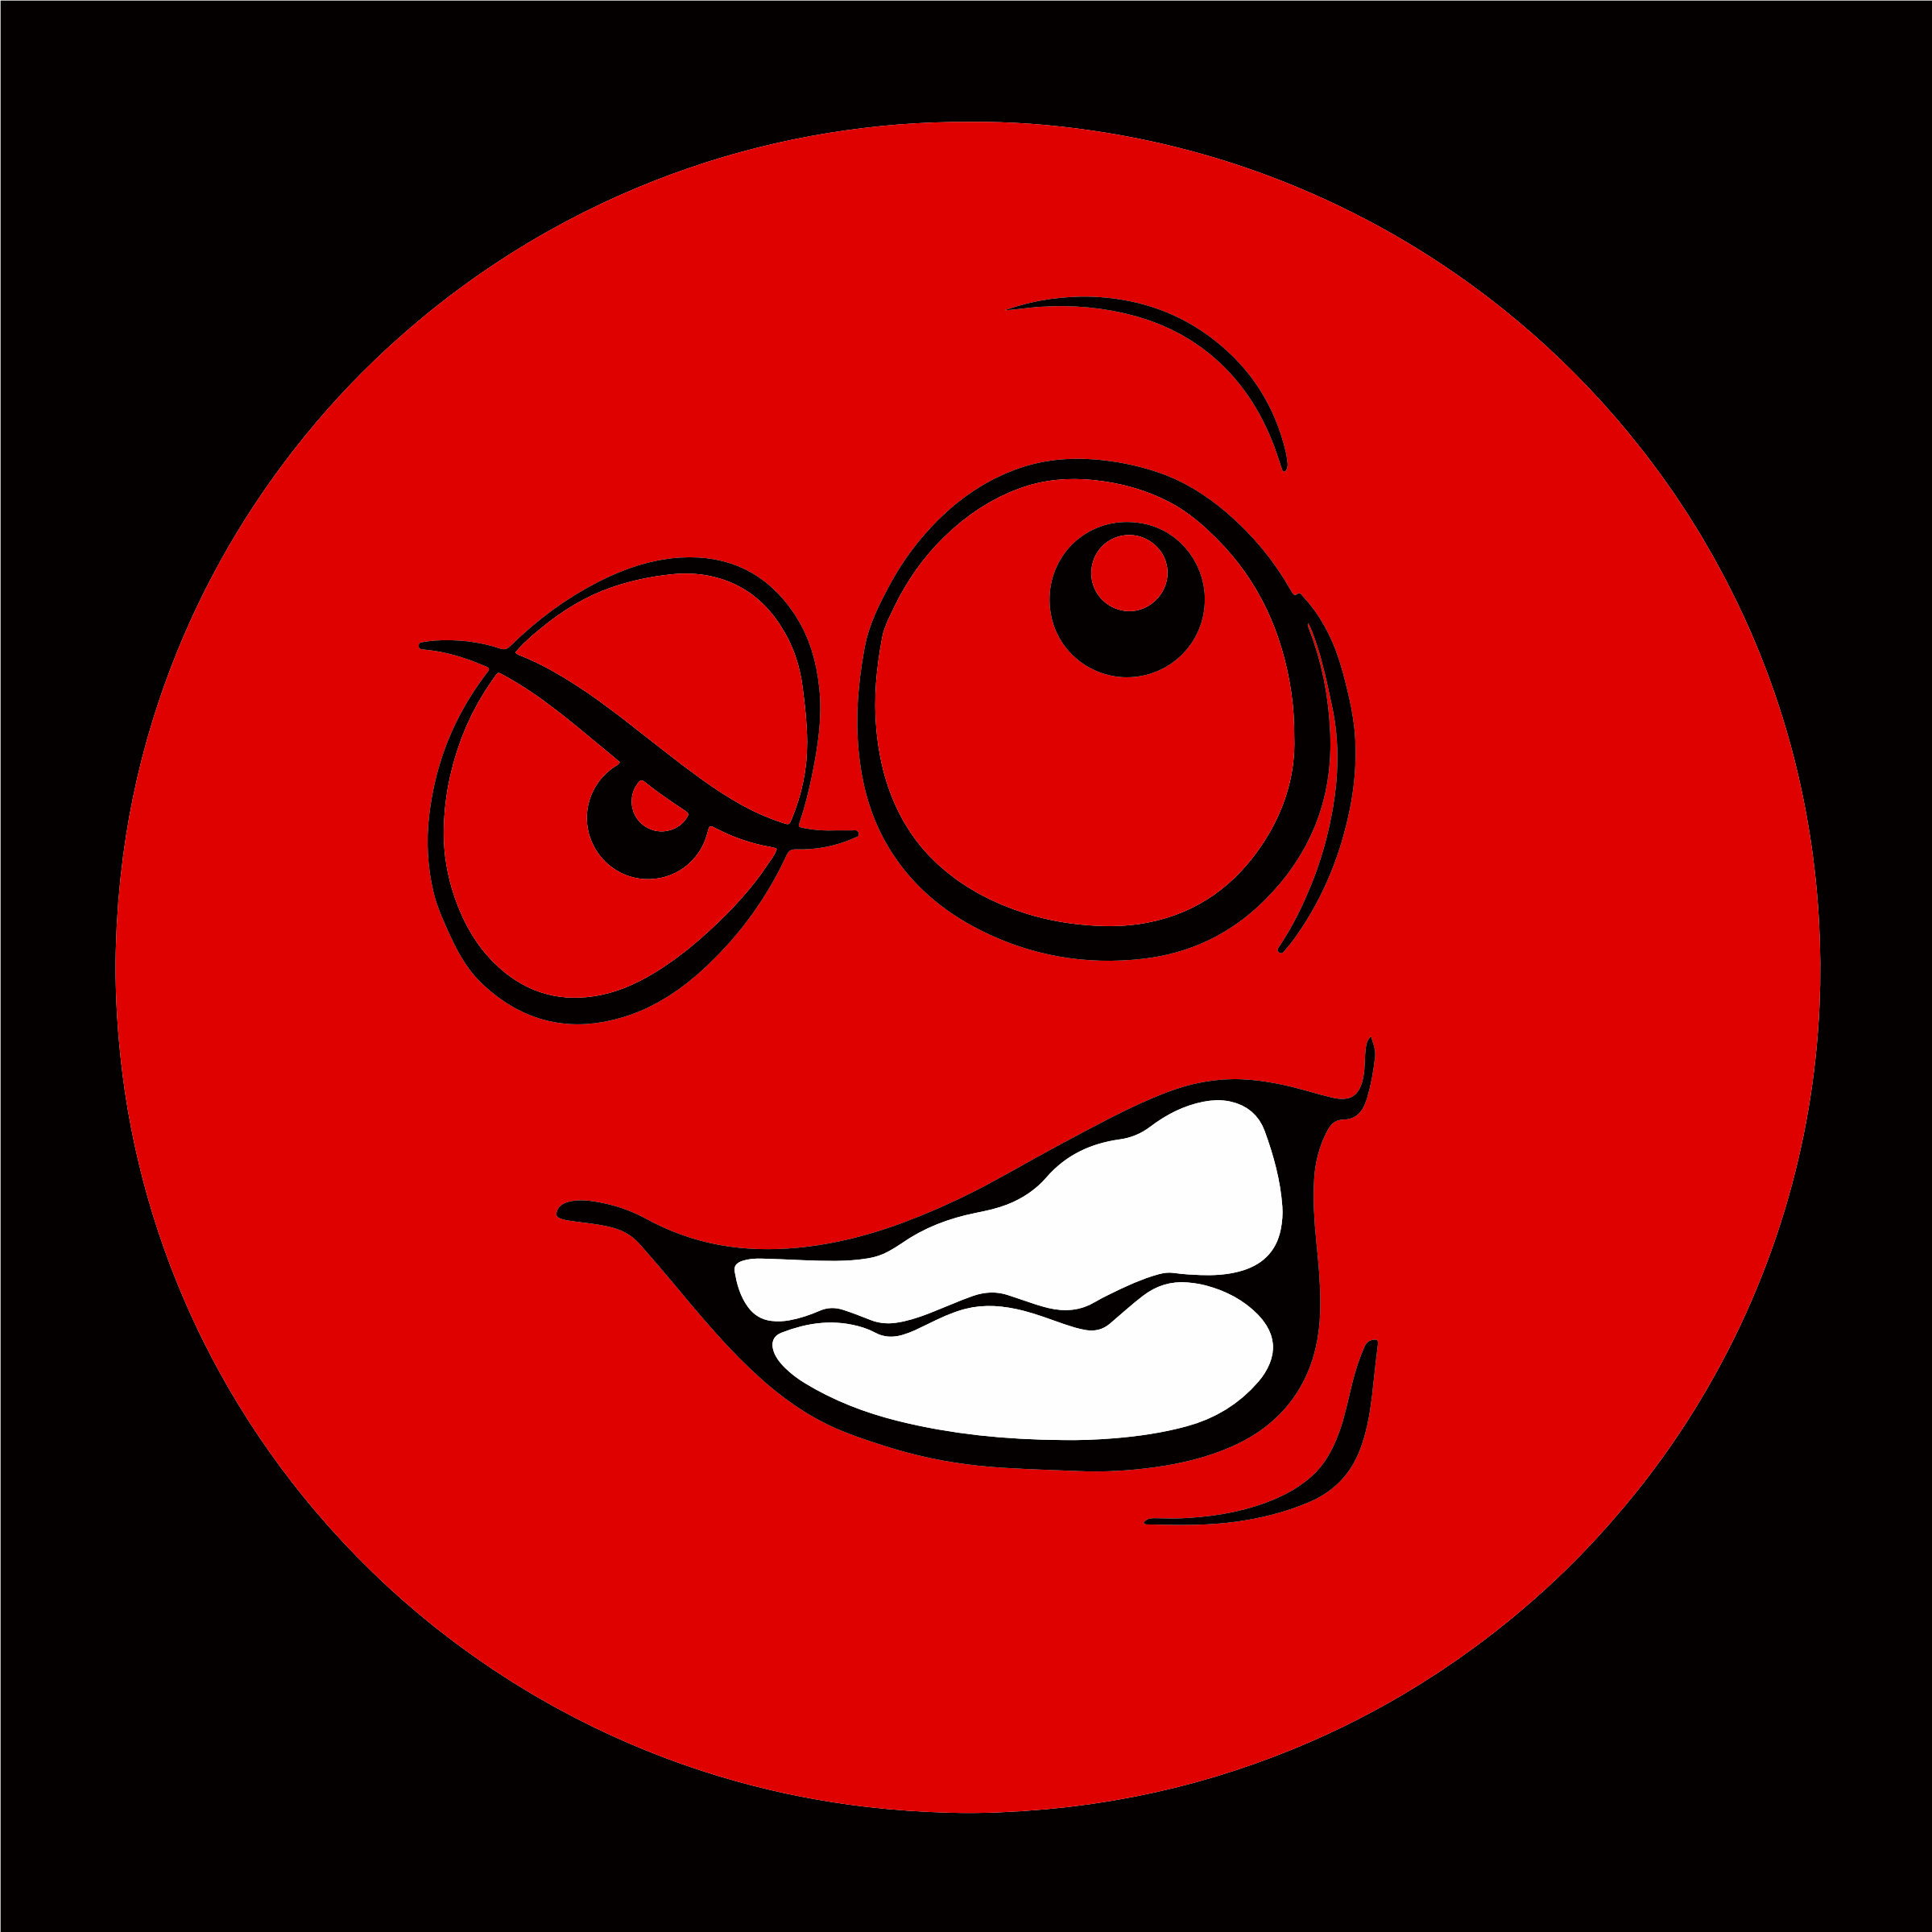 Red Smiley Emoticon 2 by GDJ